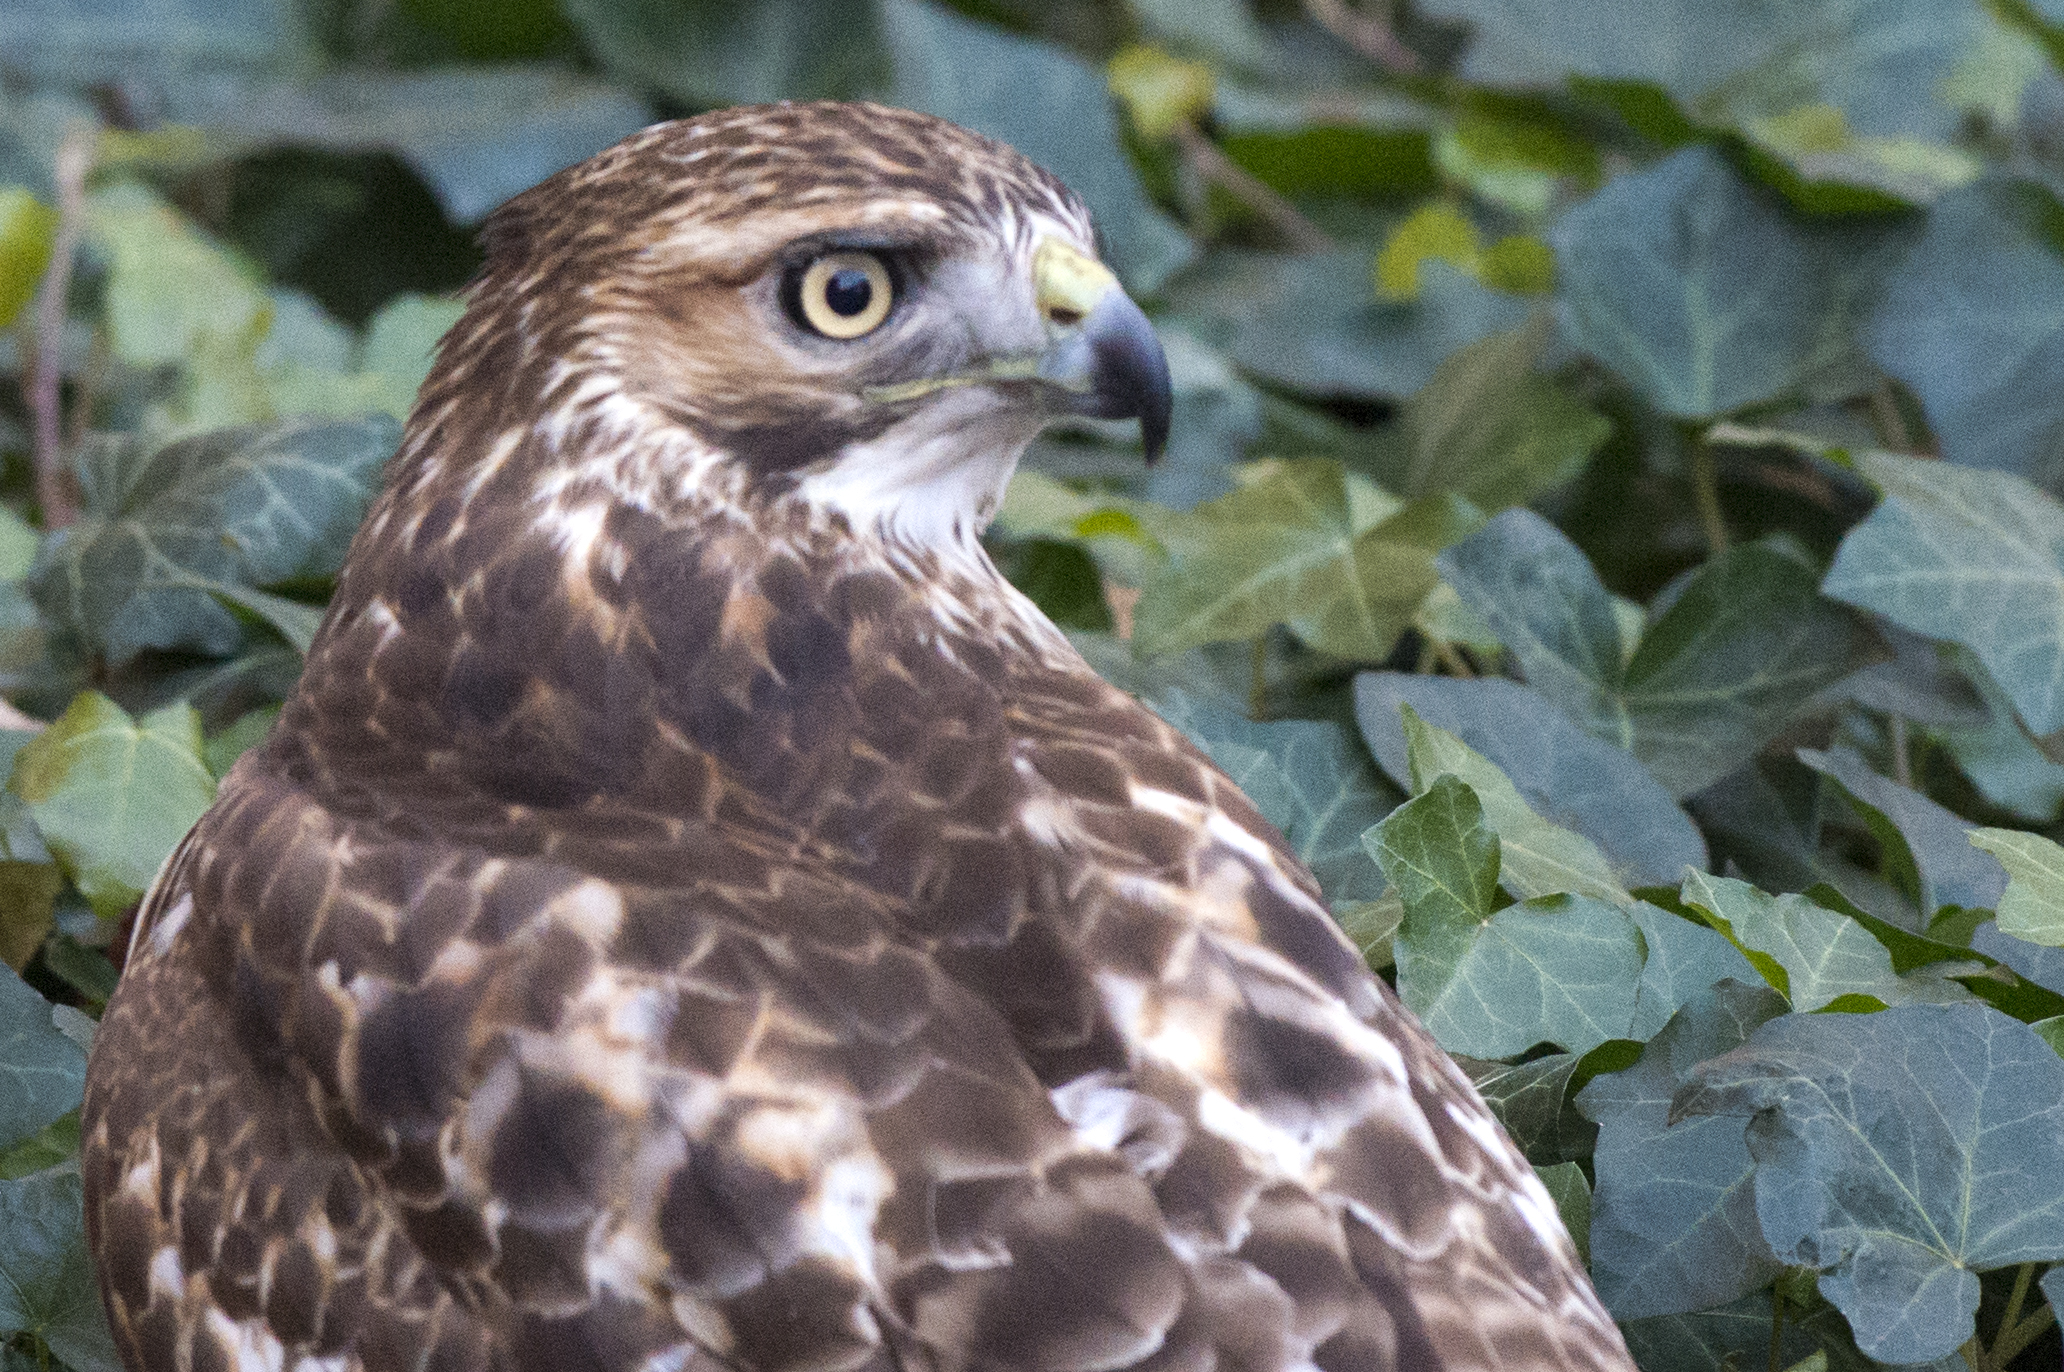 A view of the red-tail from behind. Photo by Patrick Mansell.